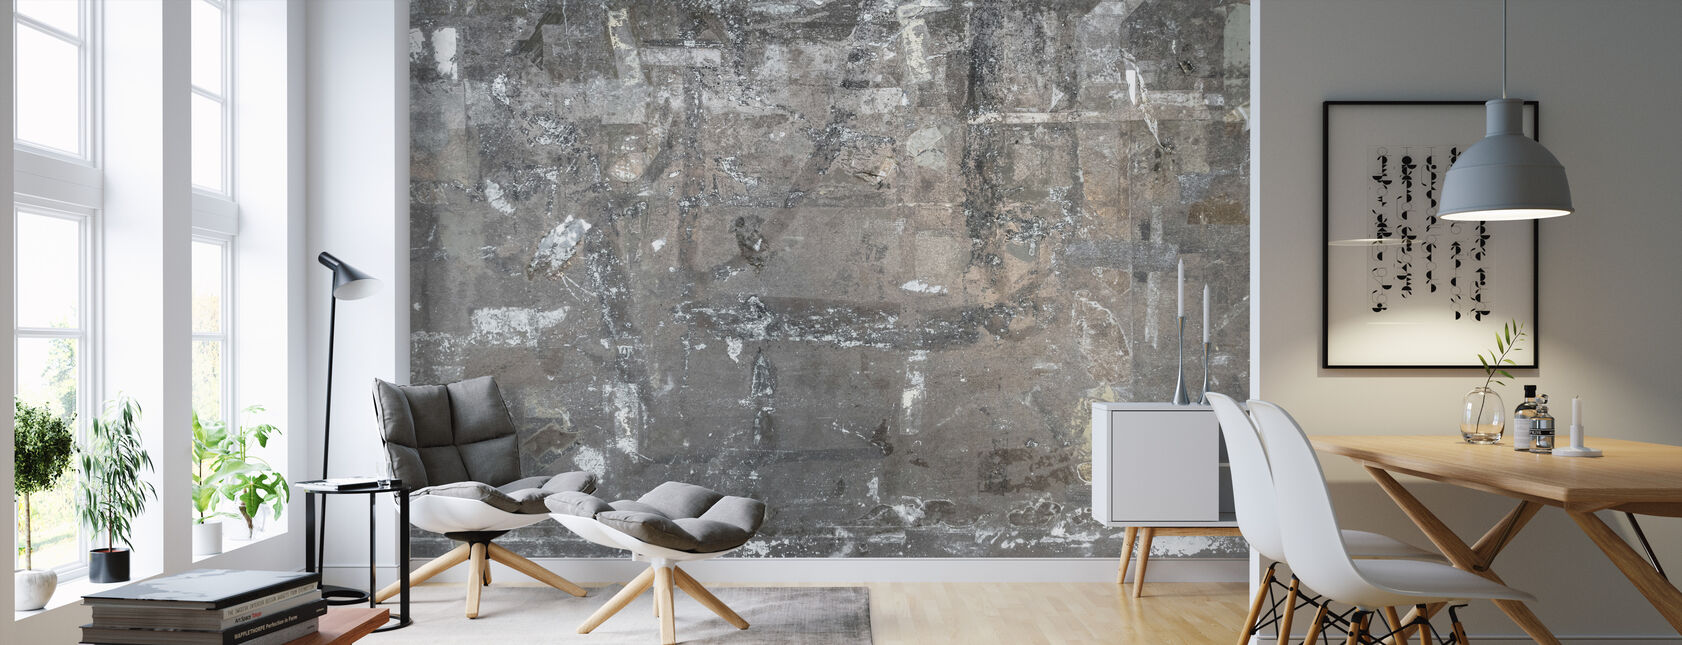 Ripped Poster Wall - Wallpaper - Living Room